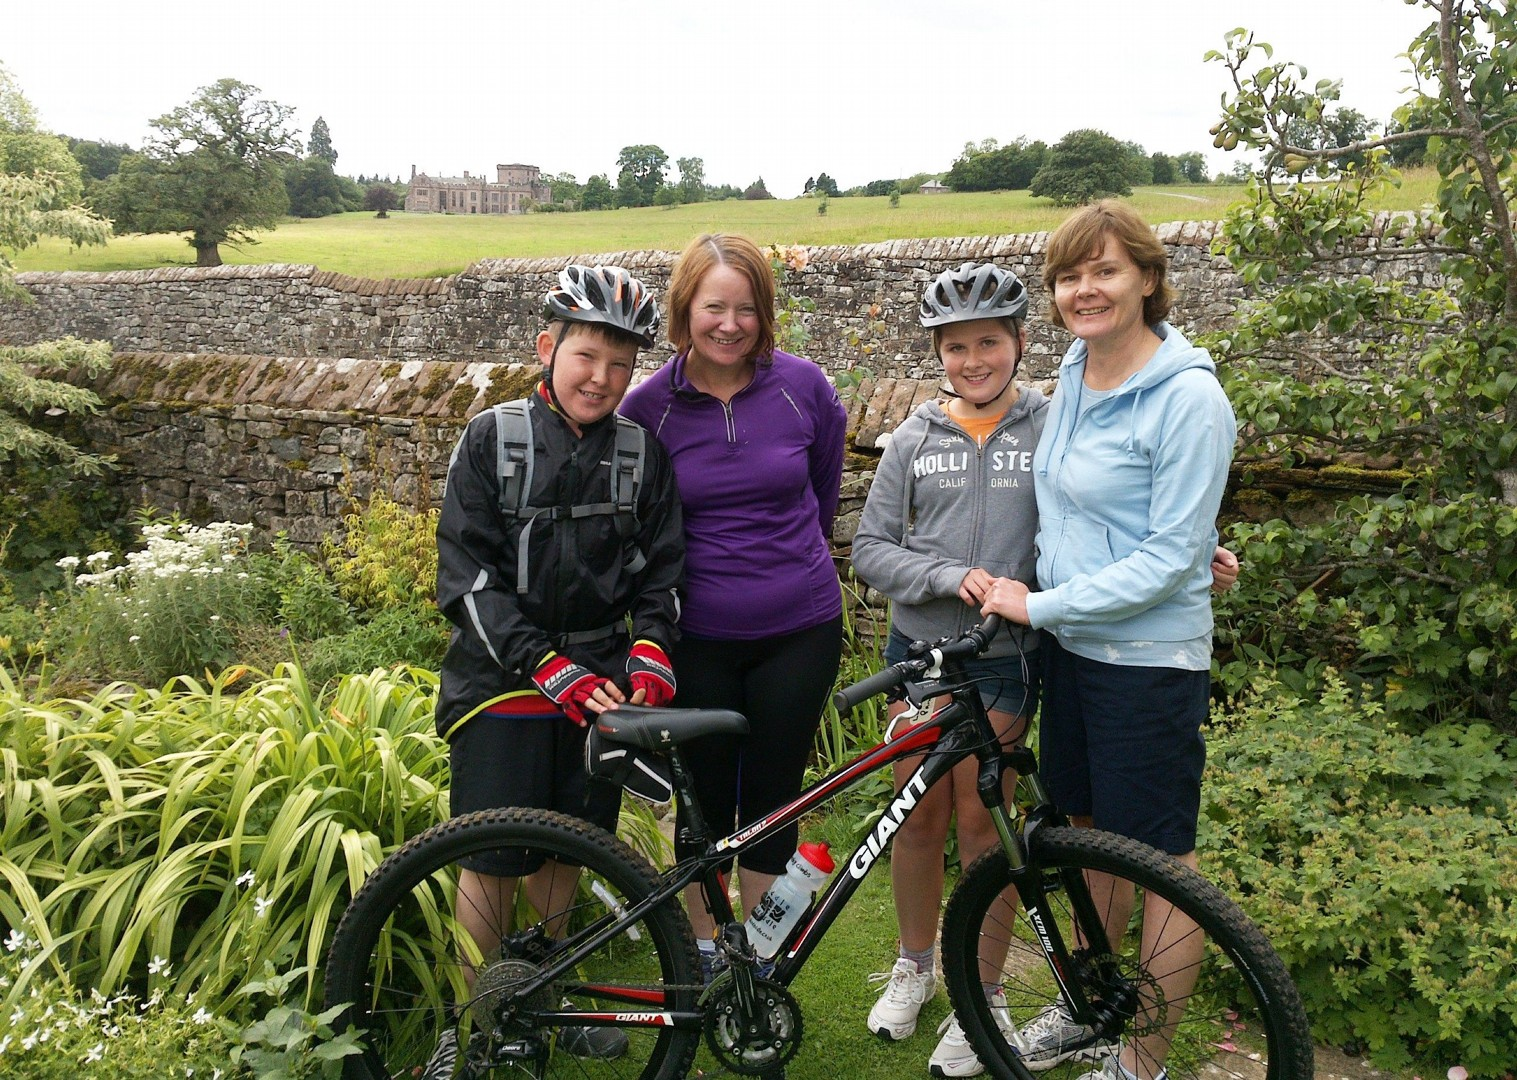 family-guided-bike-skills-uk-lake-district-cycling-holiday.jpg - UK - Lake District - Guided Family Bike Skills - Family Cycling